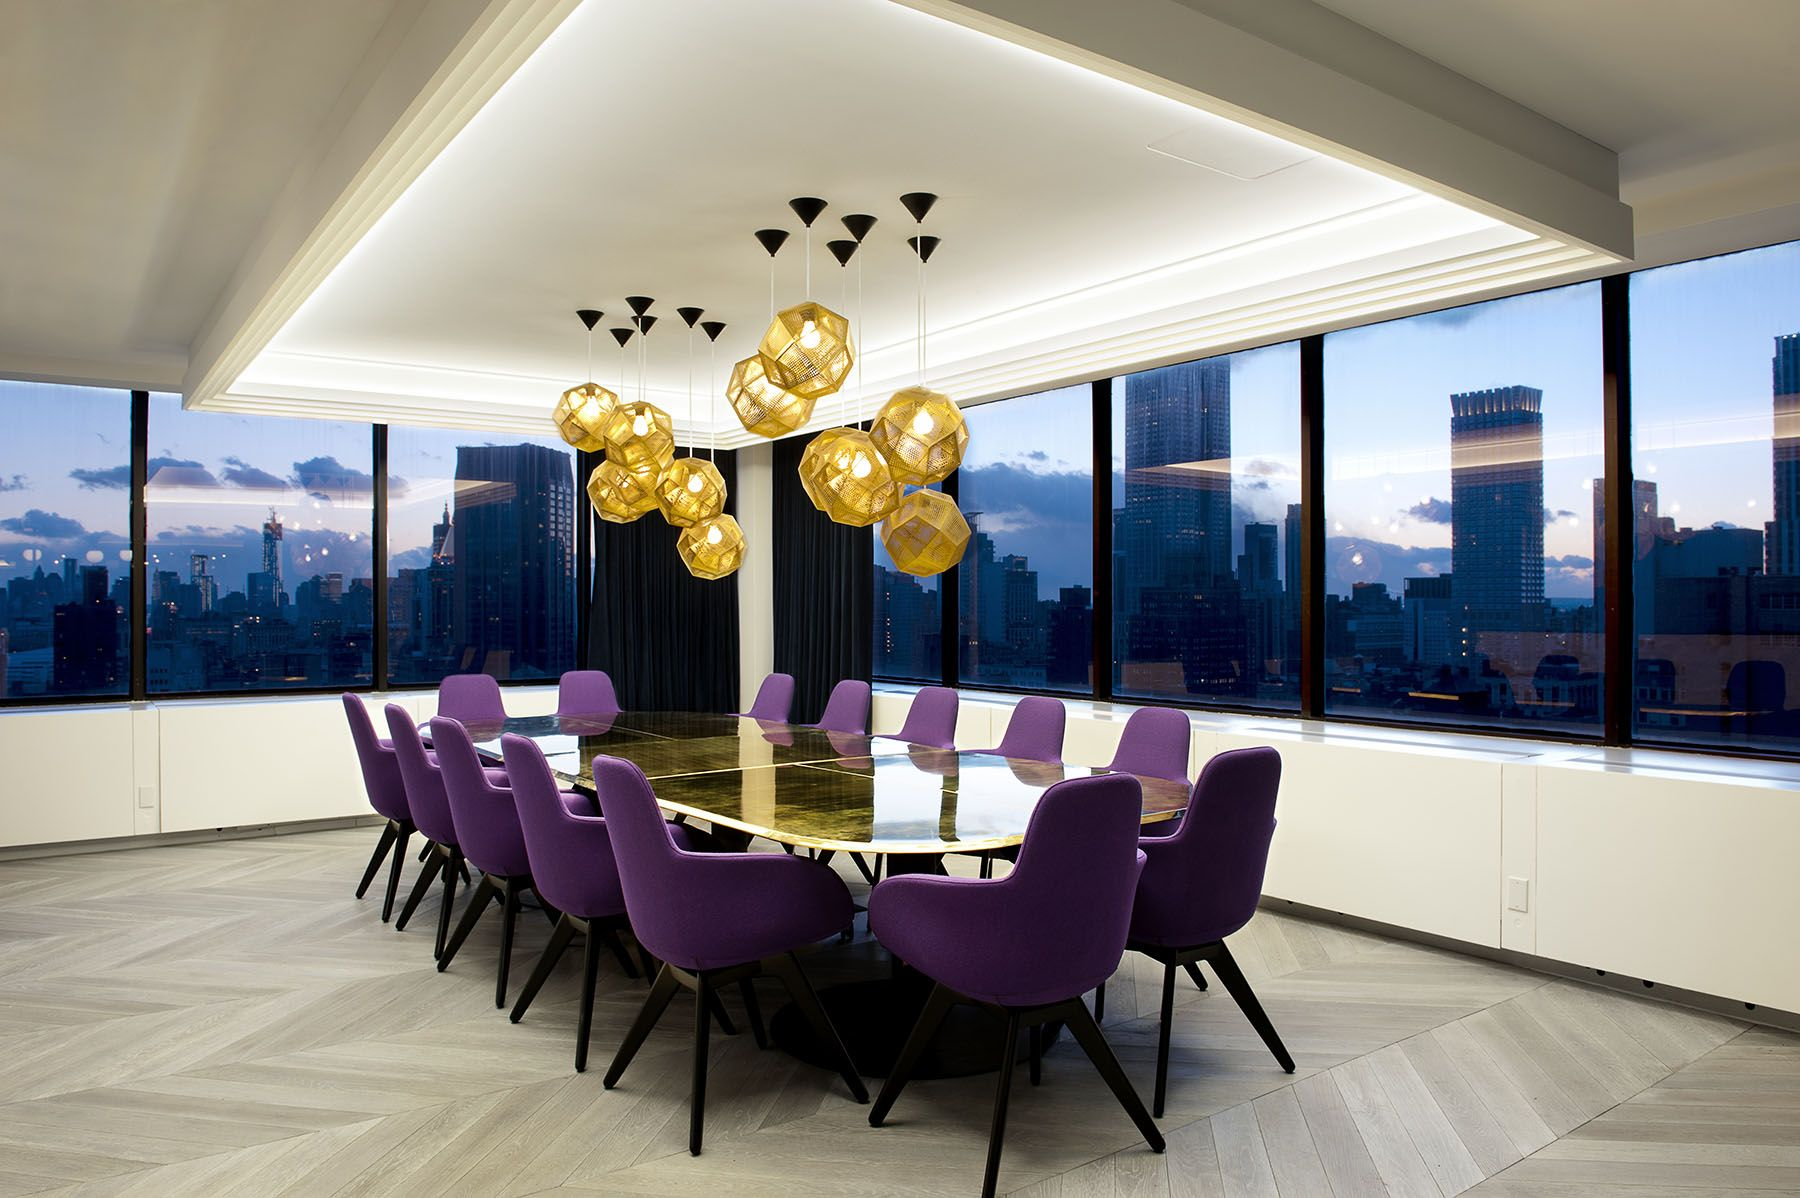 17 Best images about Tom Dixon on Pinterest | Copper, Floor lamps and The  church